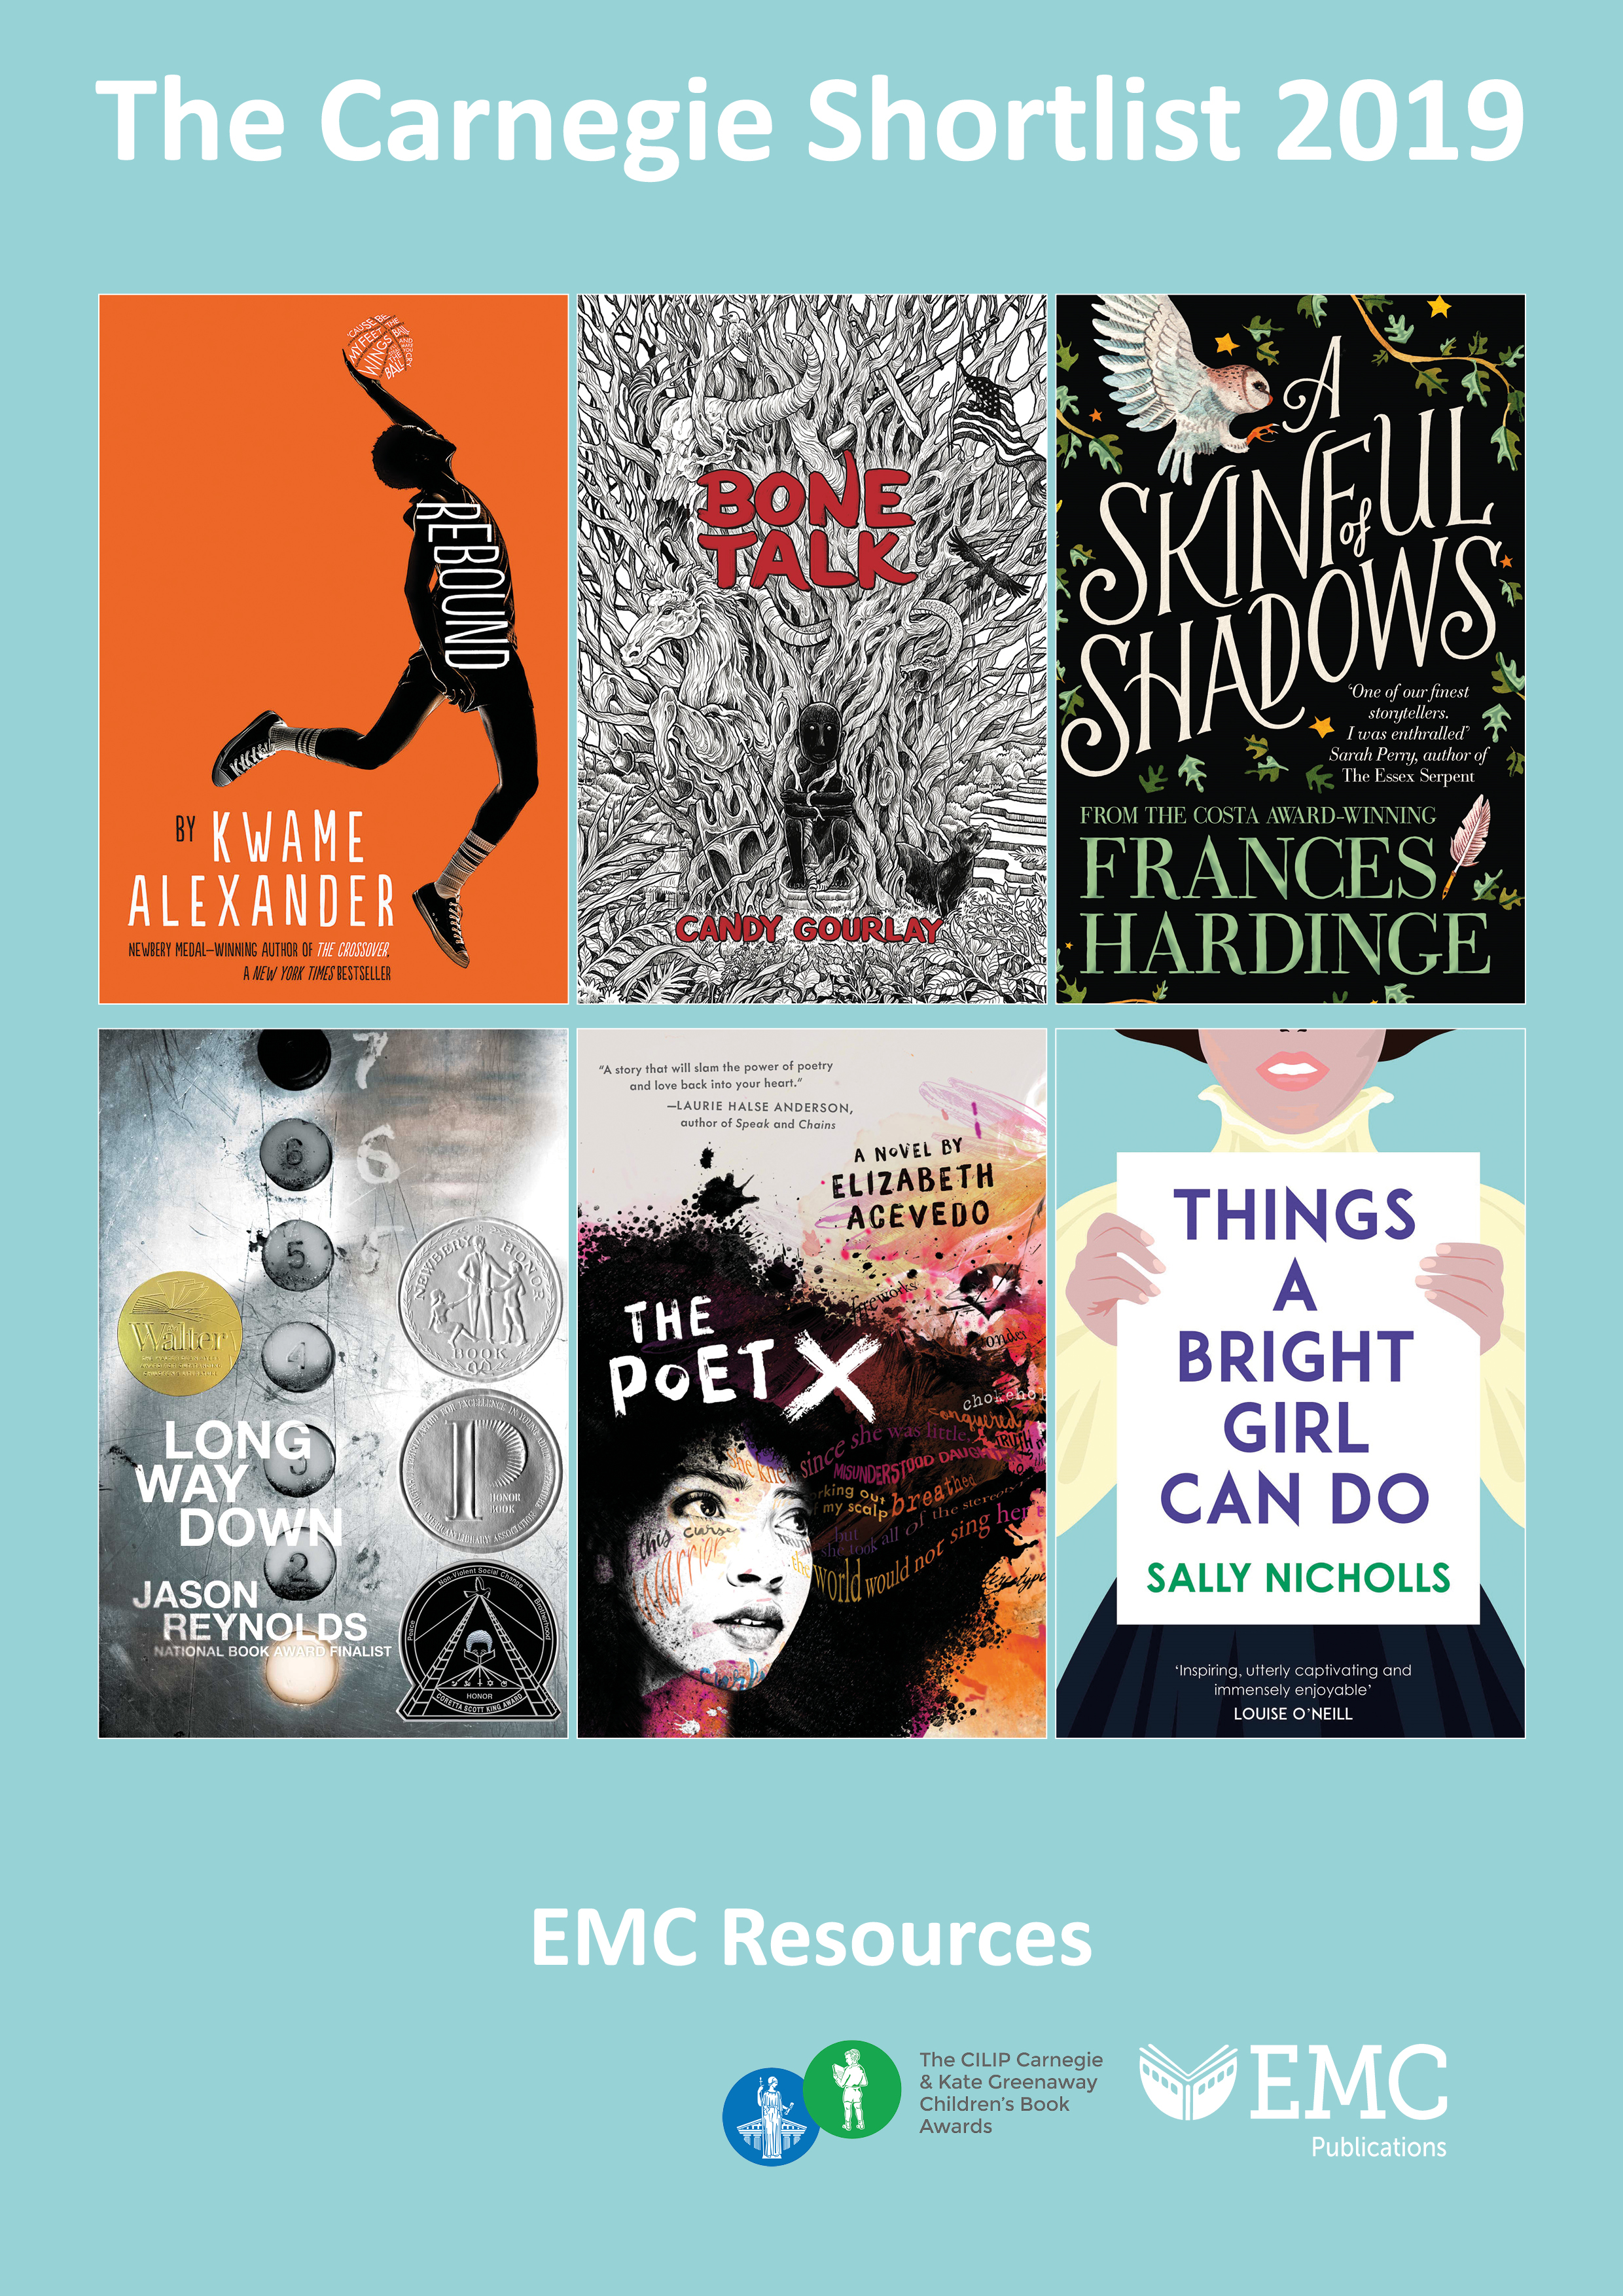 Cover image for The Carnegie Medal Award Shortlist 2019 – Free EMC Resources (Download) [EMC-Free]